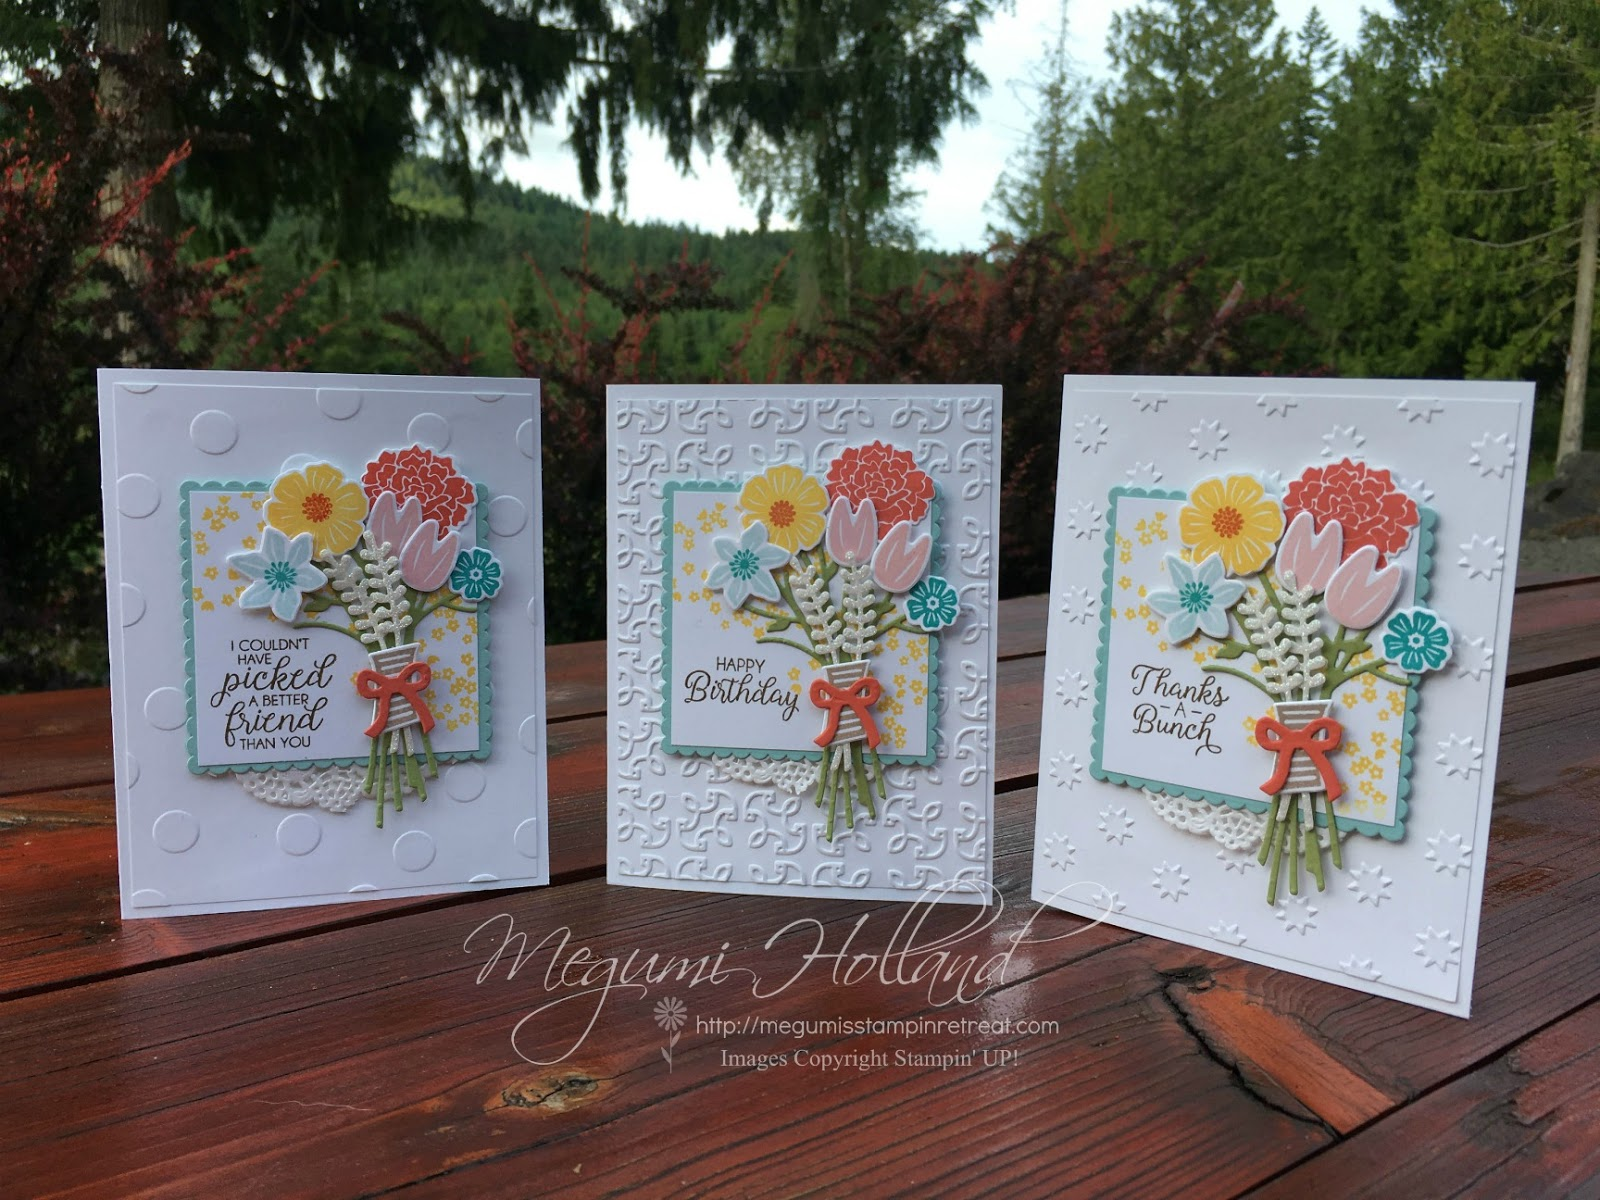 Hello Stampers! I Just Realized I Hadnu0027t Shared This Project Yet. These  Pretty Cards Are From My July Card Club Workshops Featuring The Beautiful  Bouquet ...